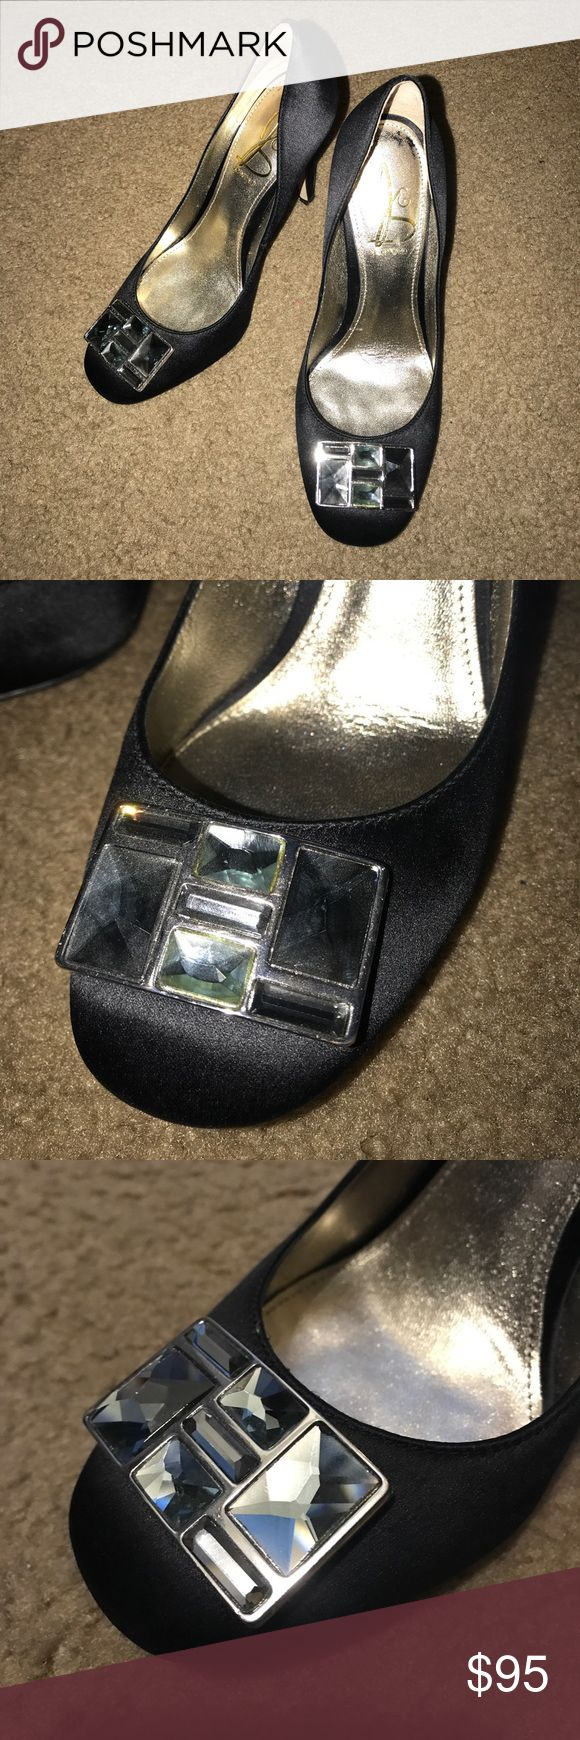 Joan & David black satin heels dress ladies shoes I have a perfect condition black satin dress heels by Joan & David in size 7M. Totally stunning and gorgeous! Joan & David Shoes Heels